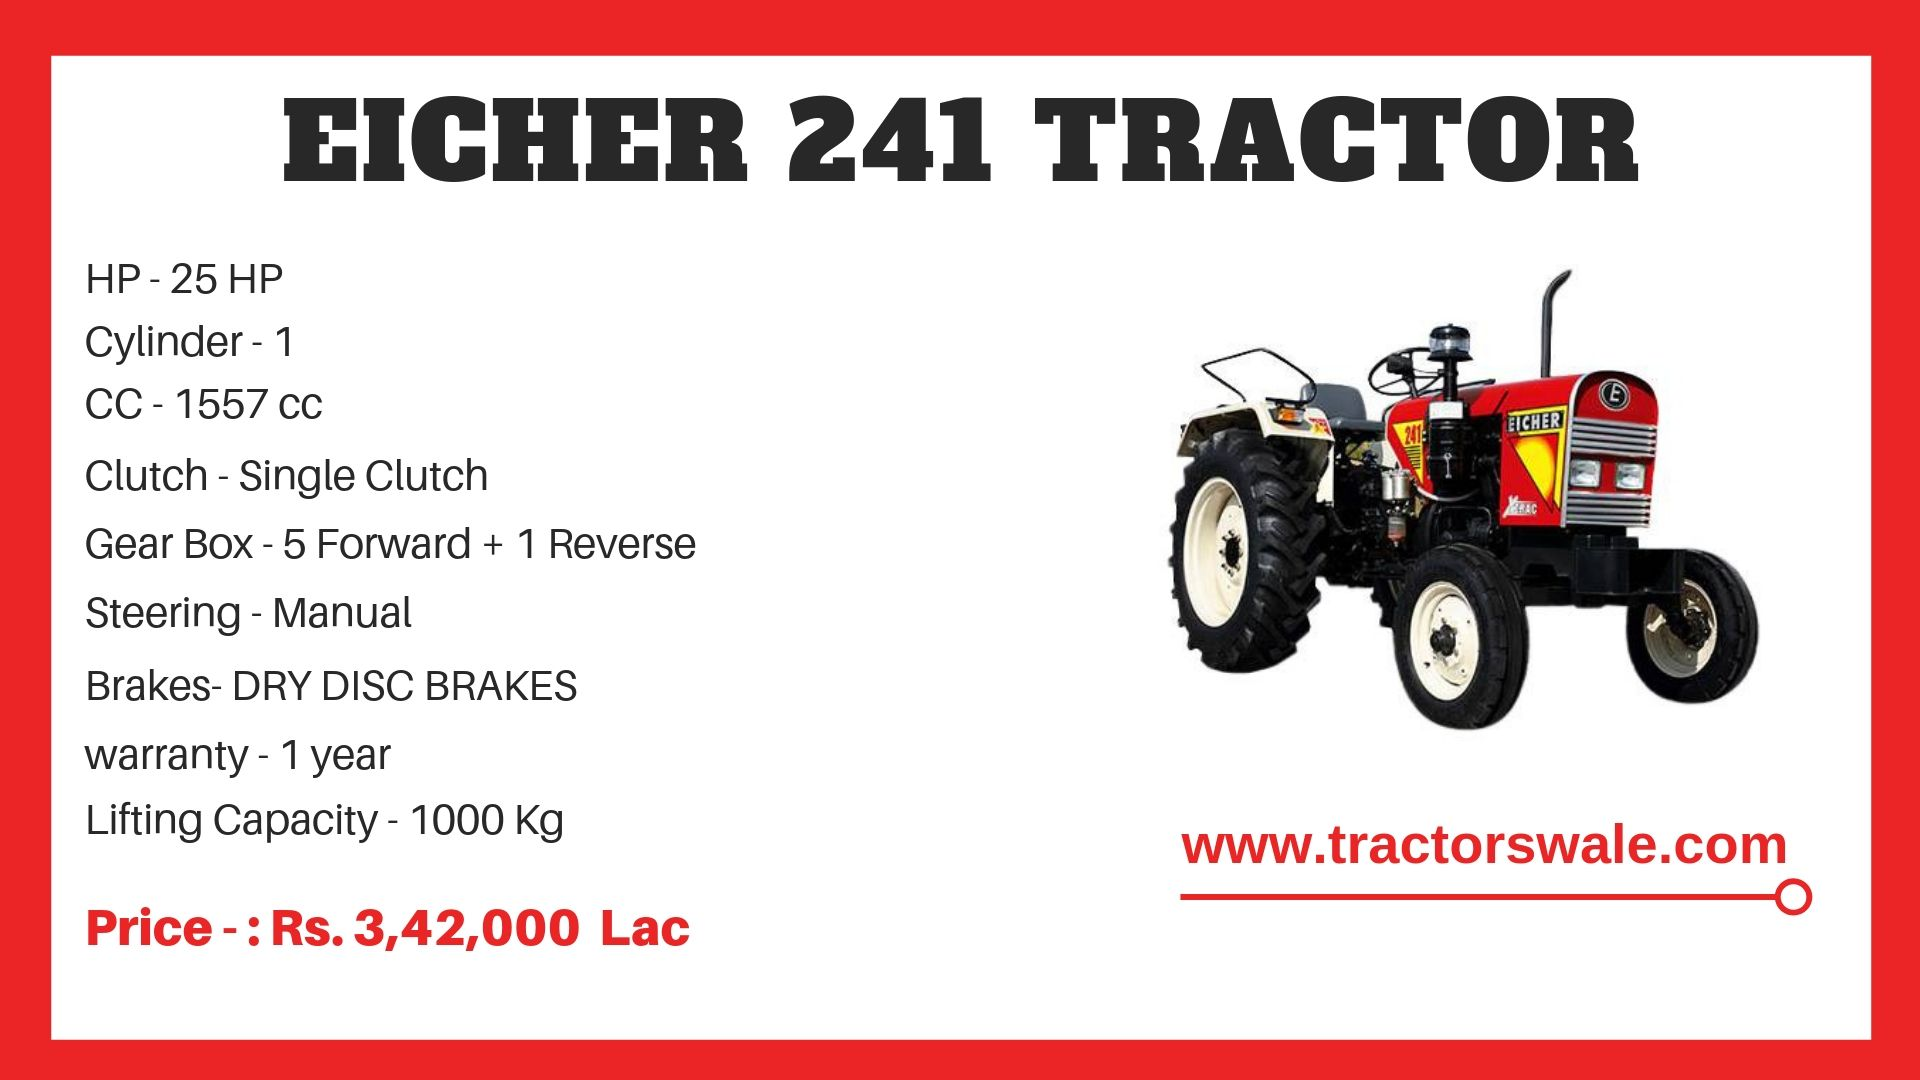 Eicher Tractor 241 Specifications